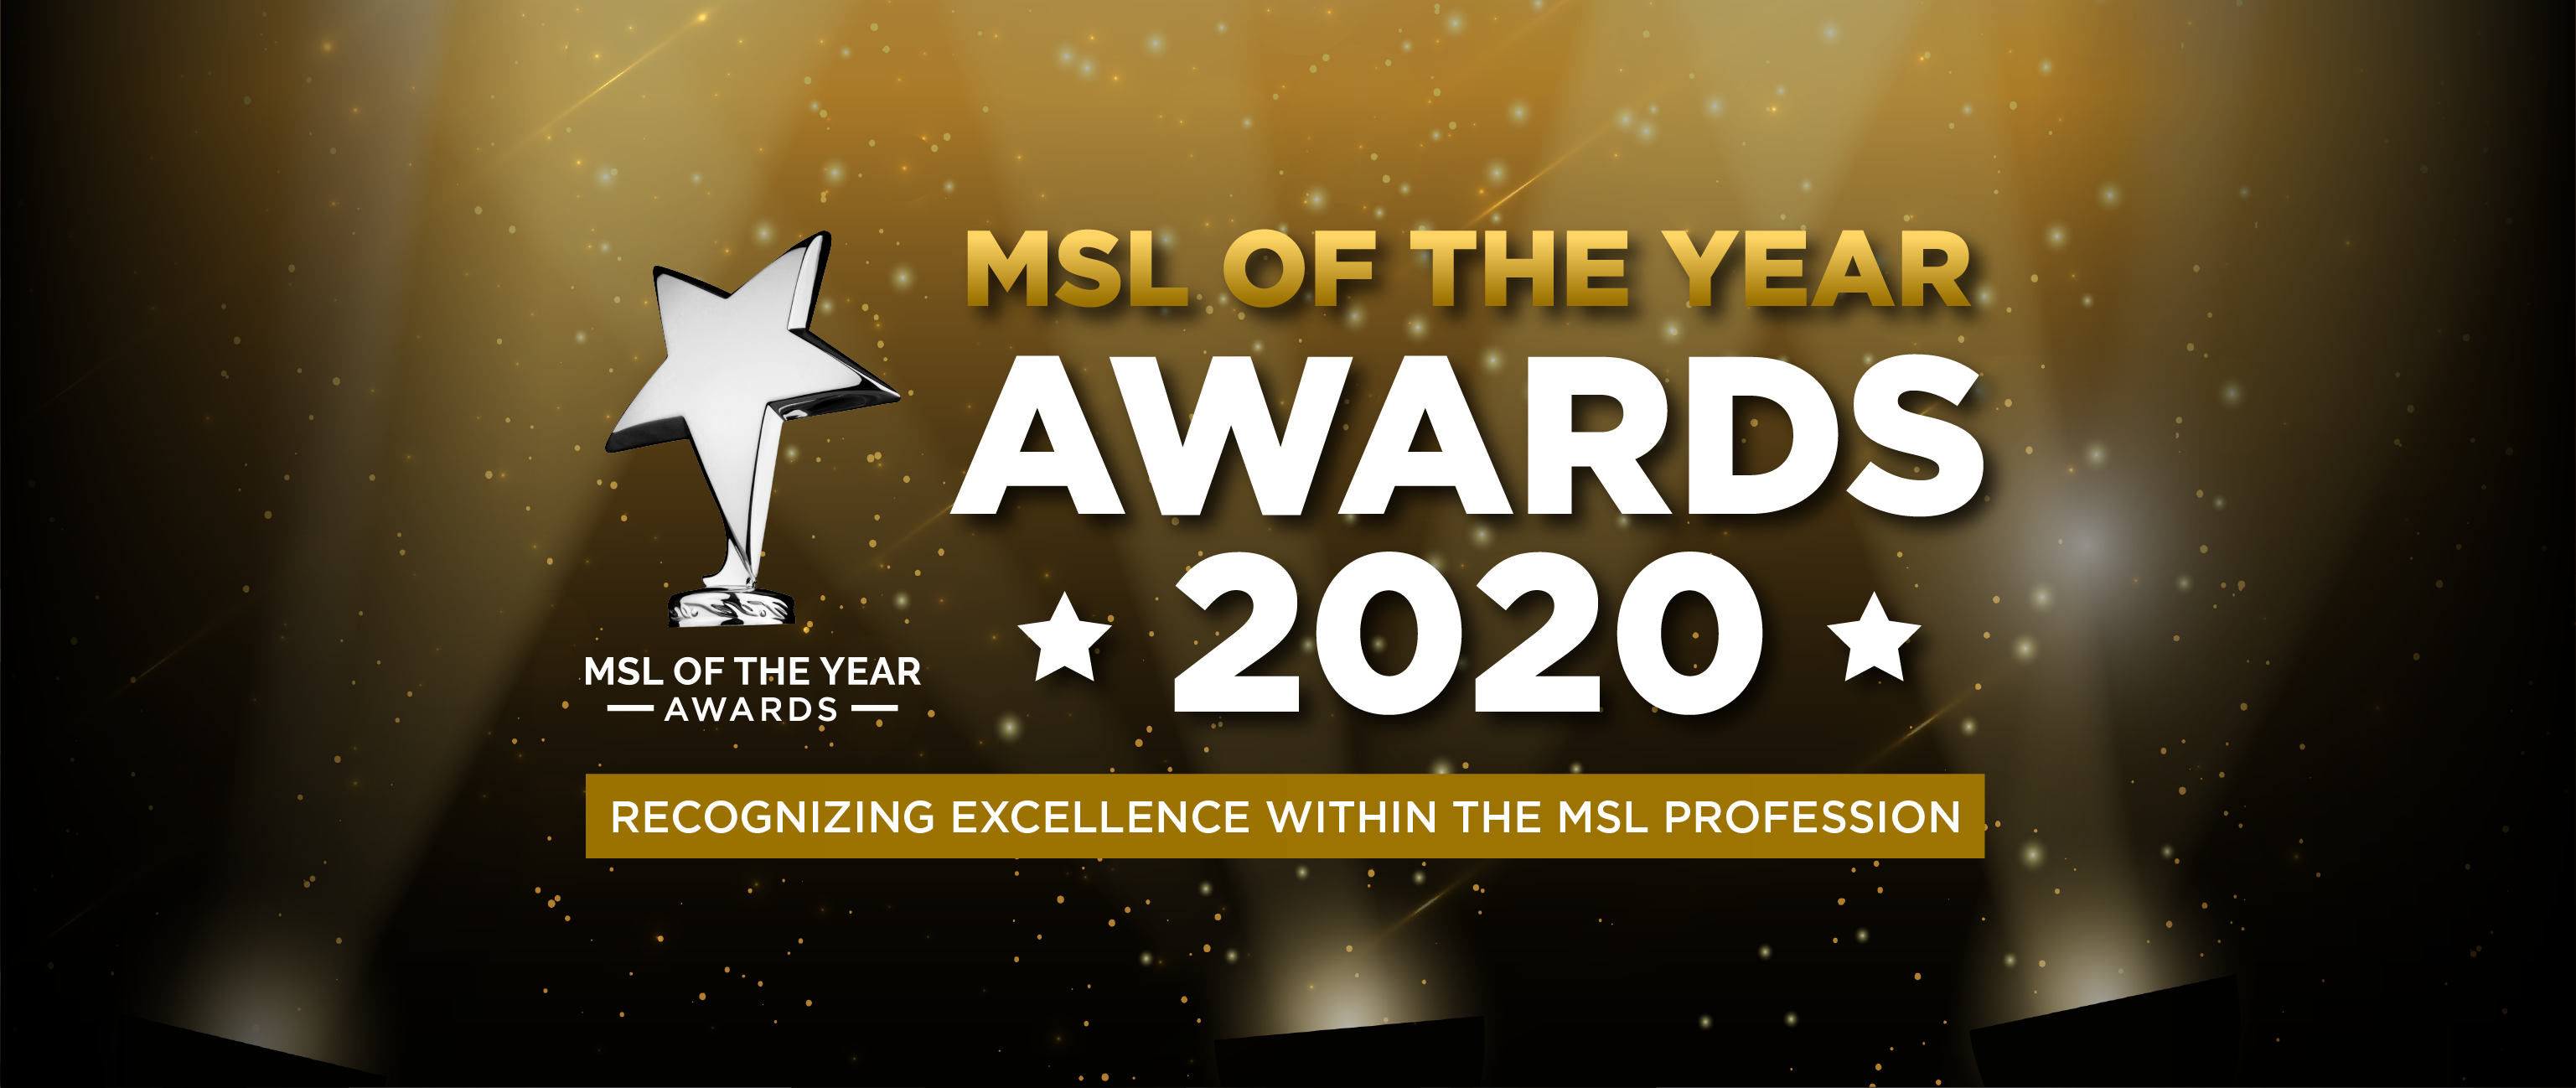 MSL of The Year Awards 2020